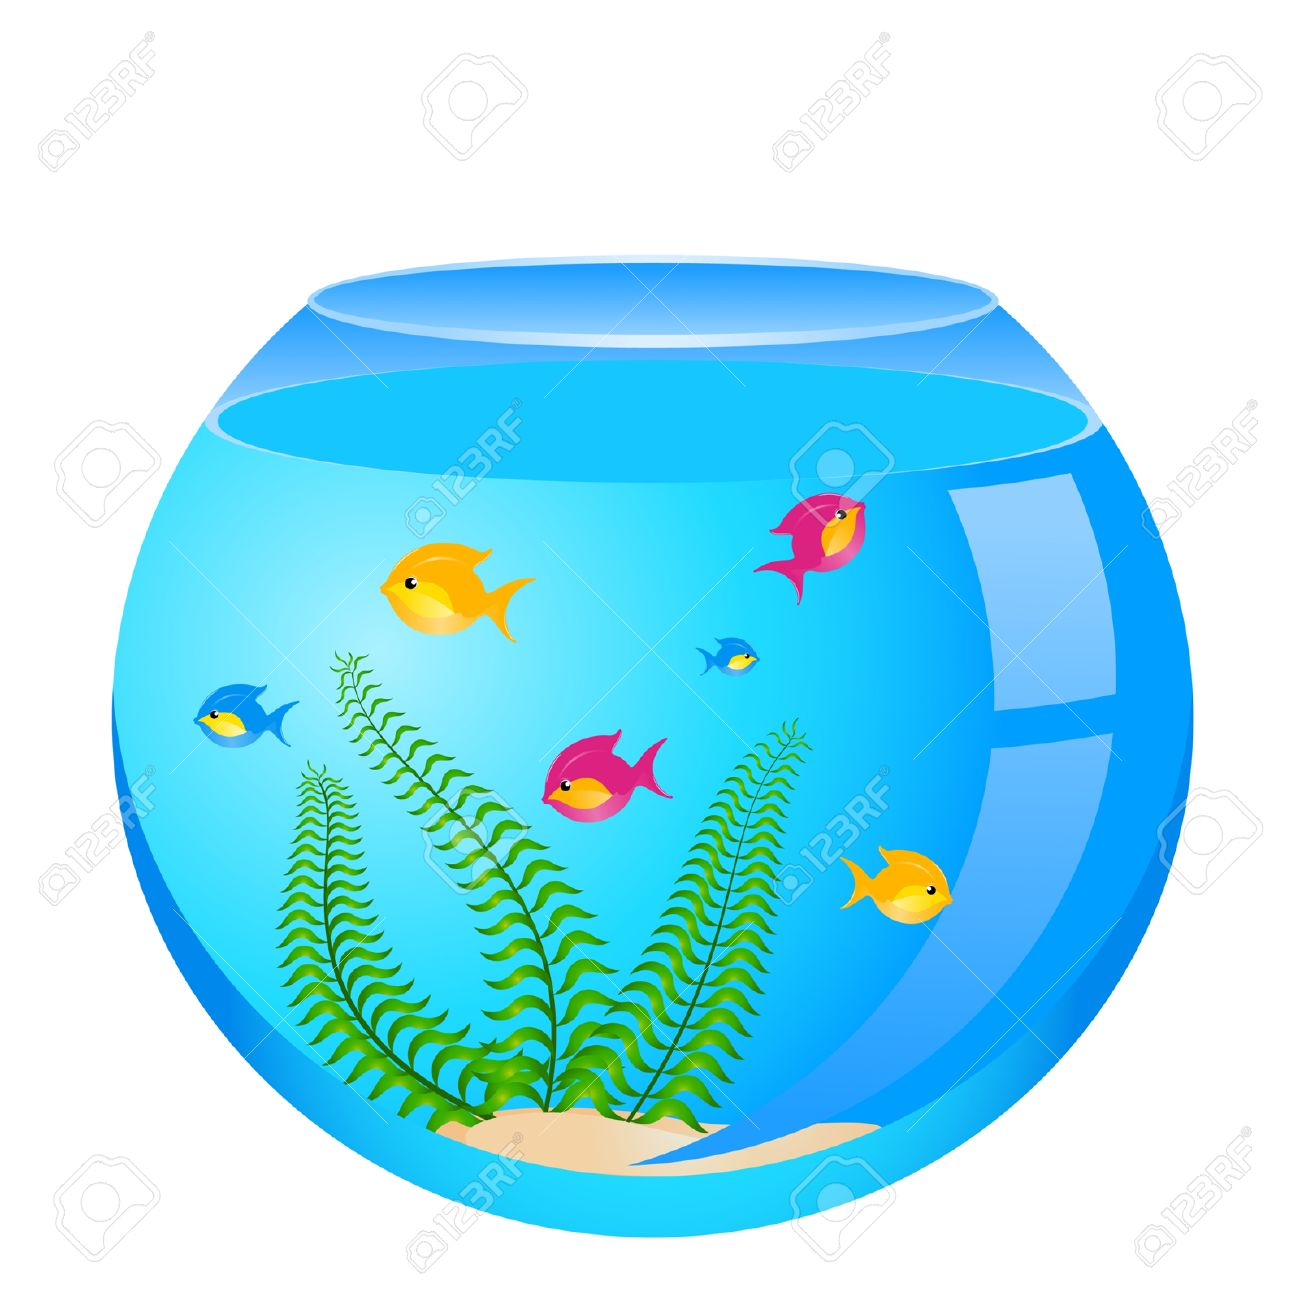 Fish bowl clipart free